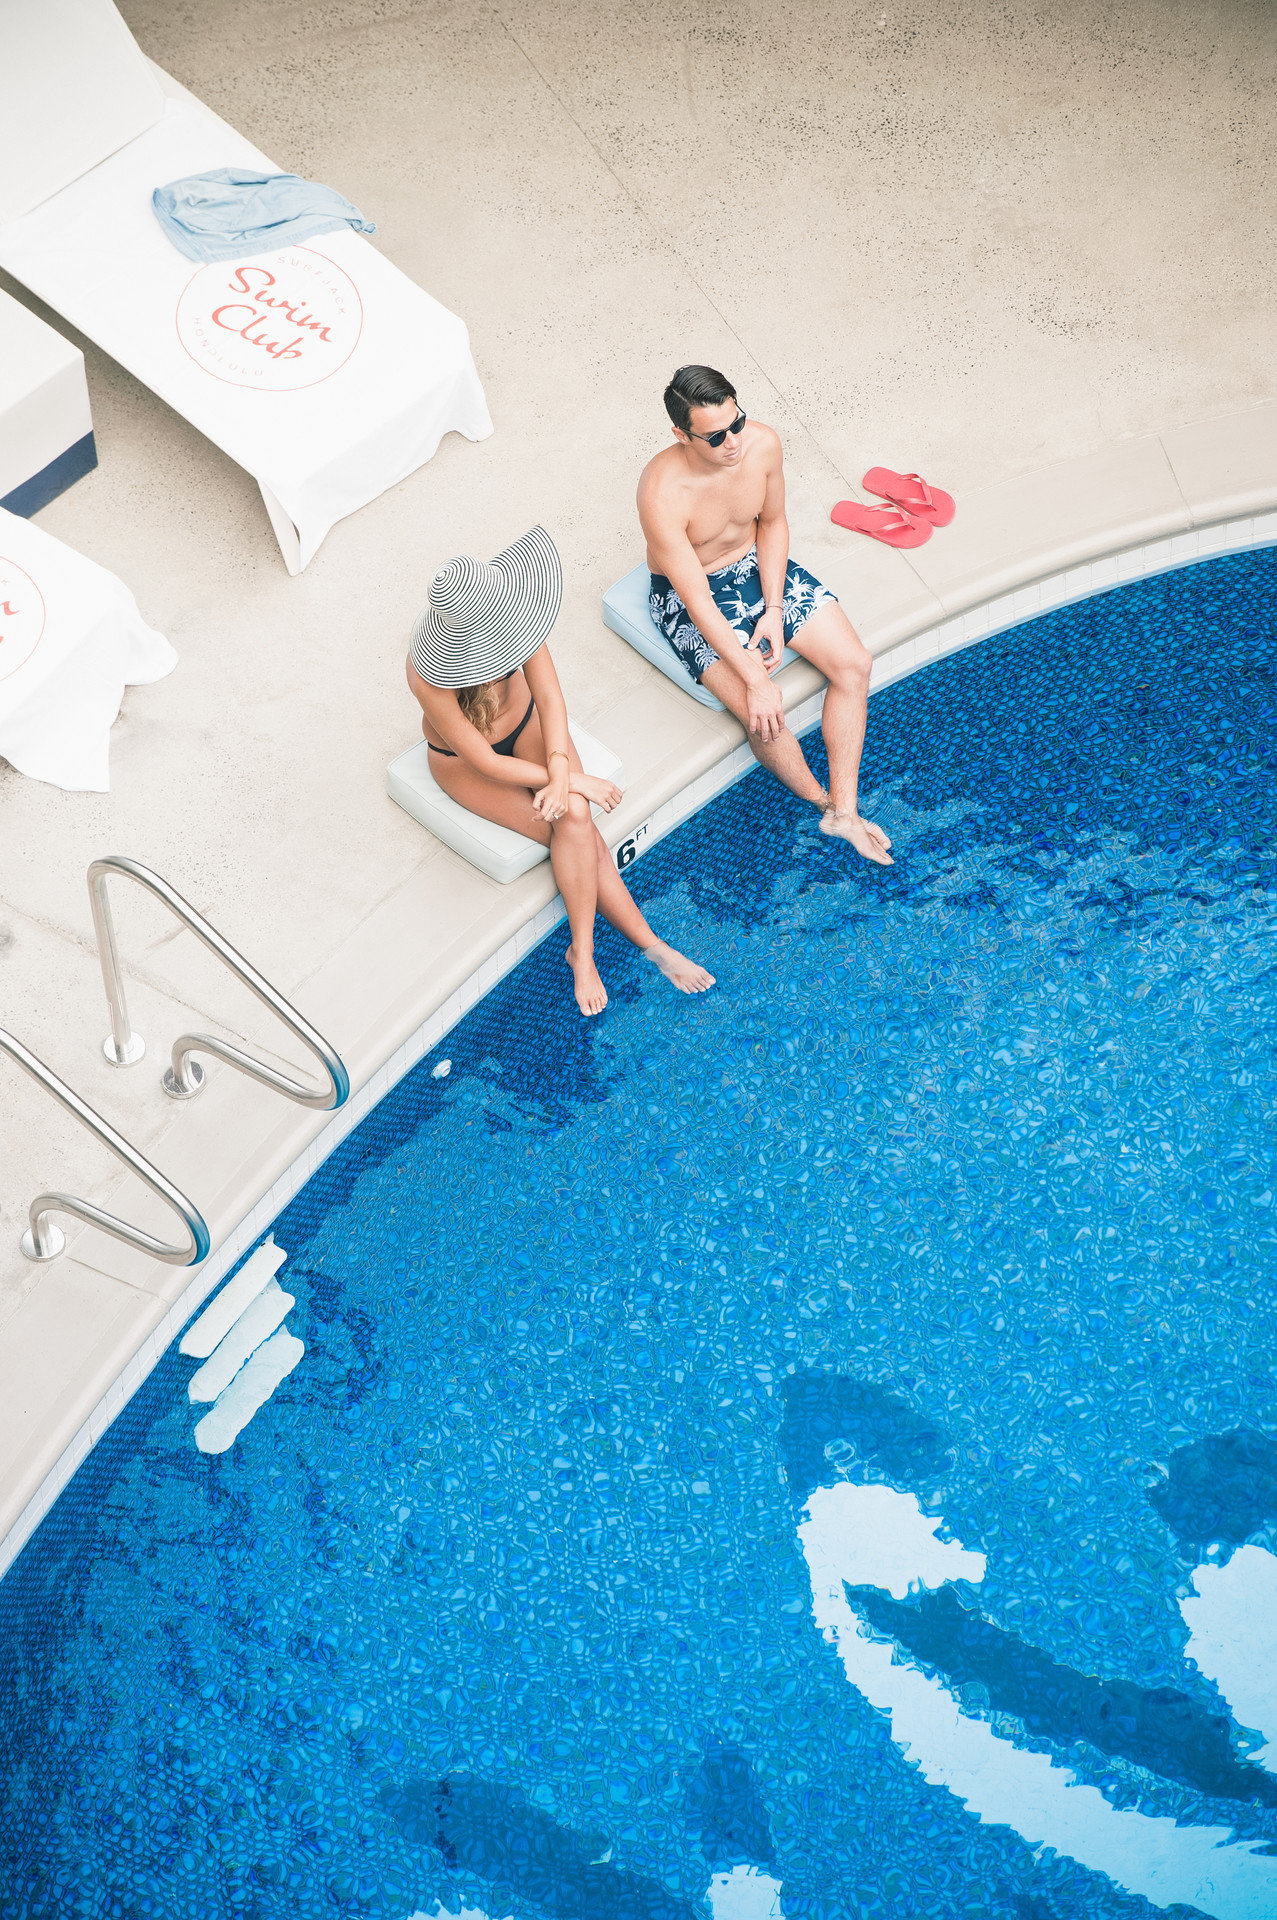 aerial Boutique couple Hotels lounge chairs Luxury nautical outdoor pool people Pool relaxation relaxing Romance Romantic sophisticated floor blue swimming pool leisure